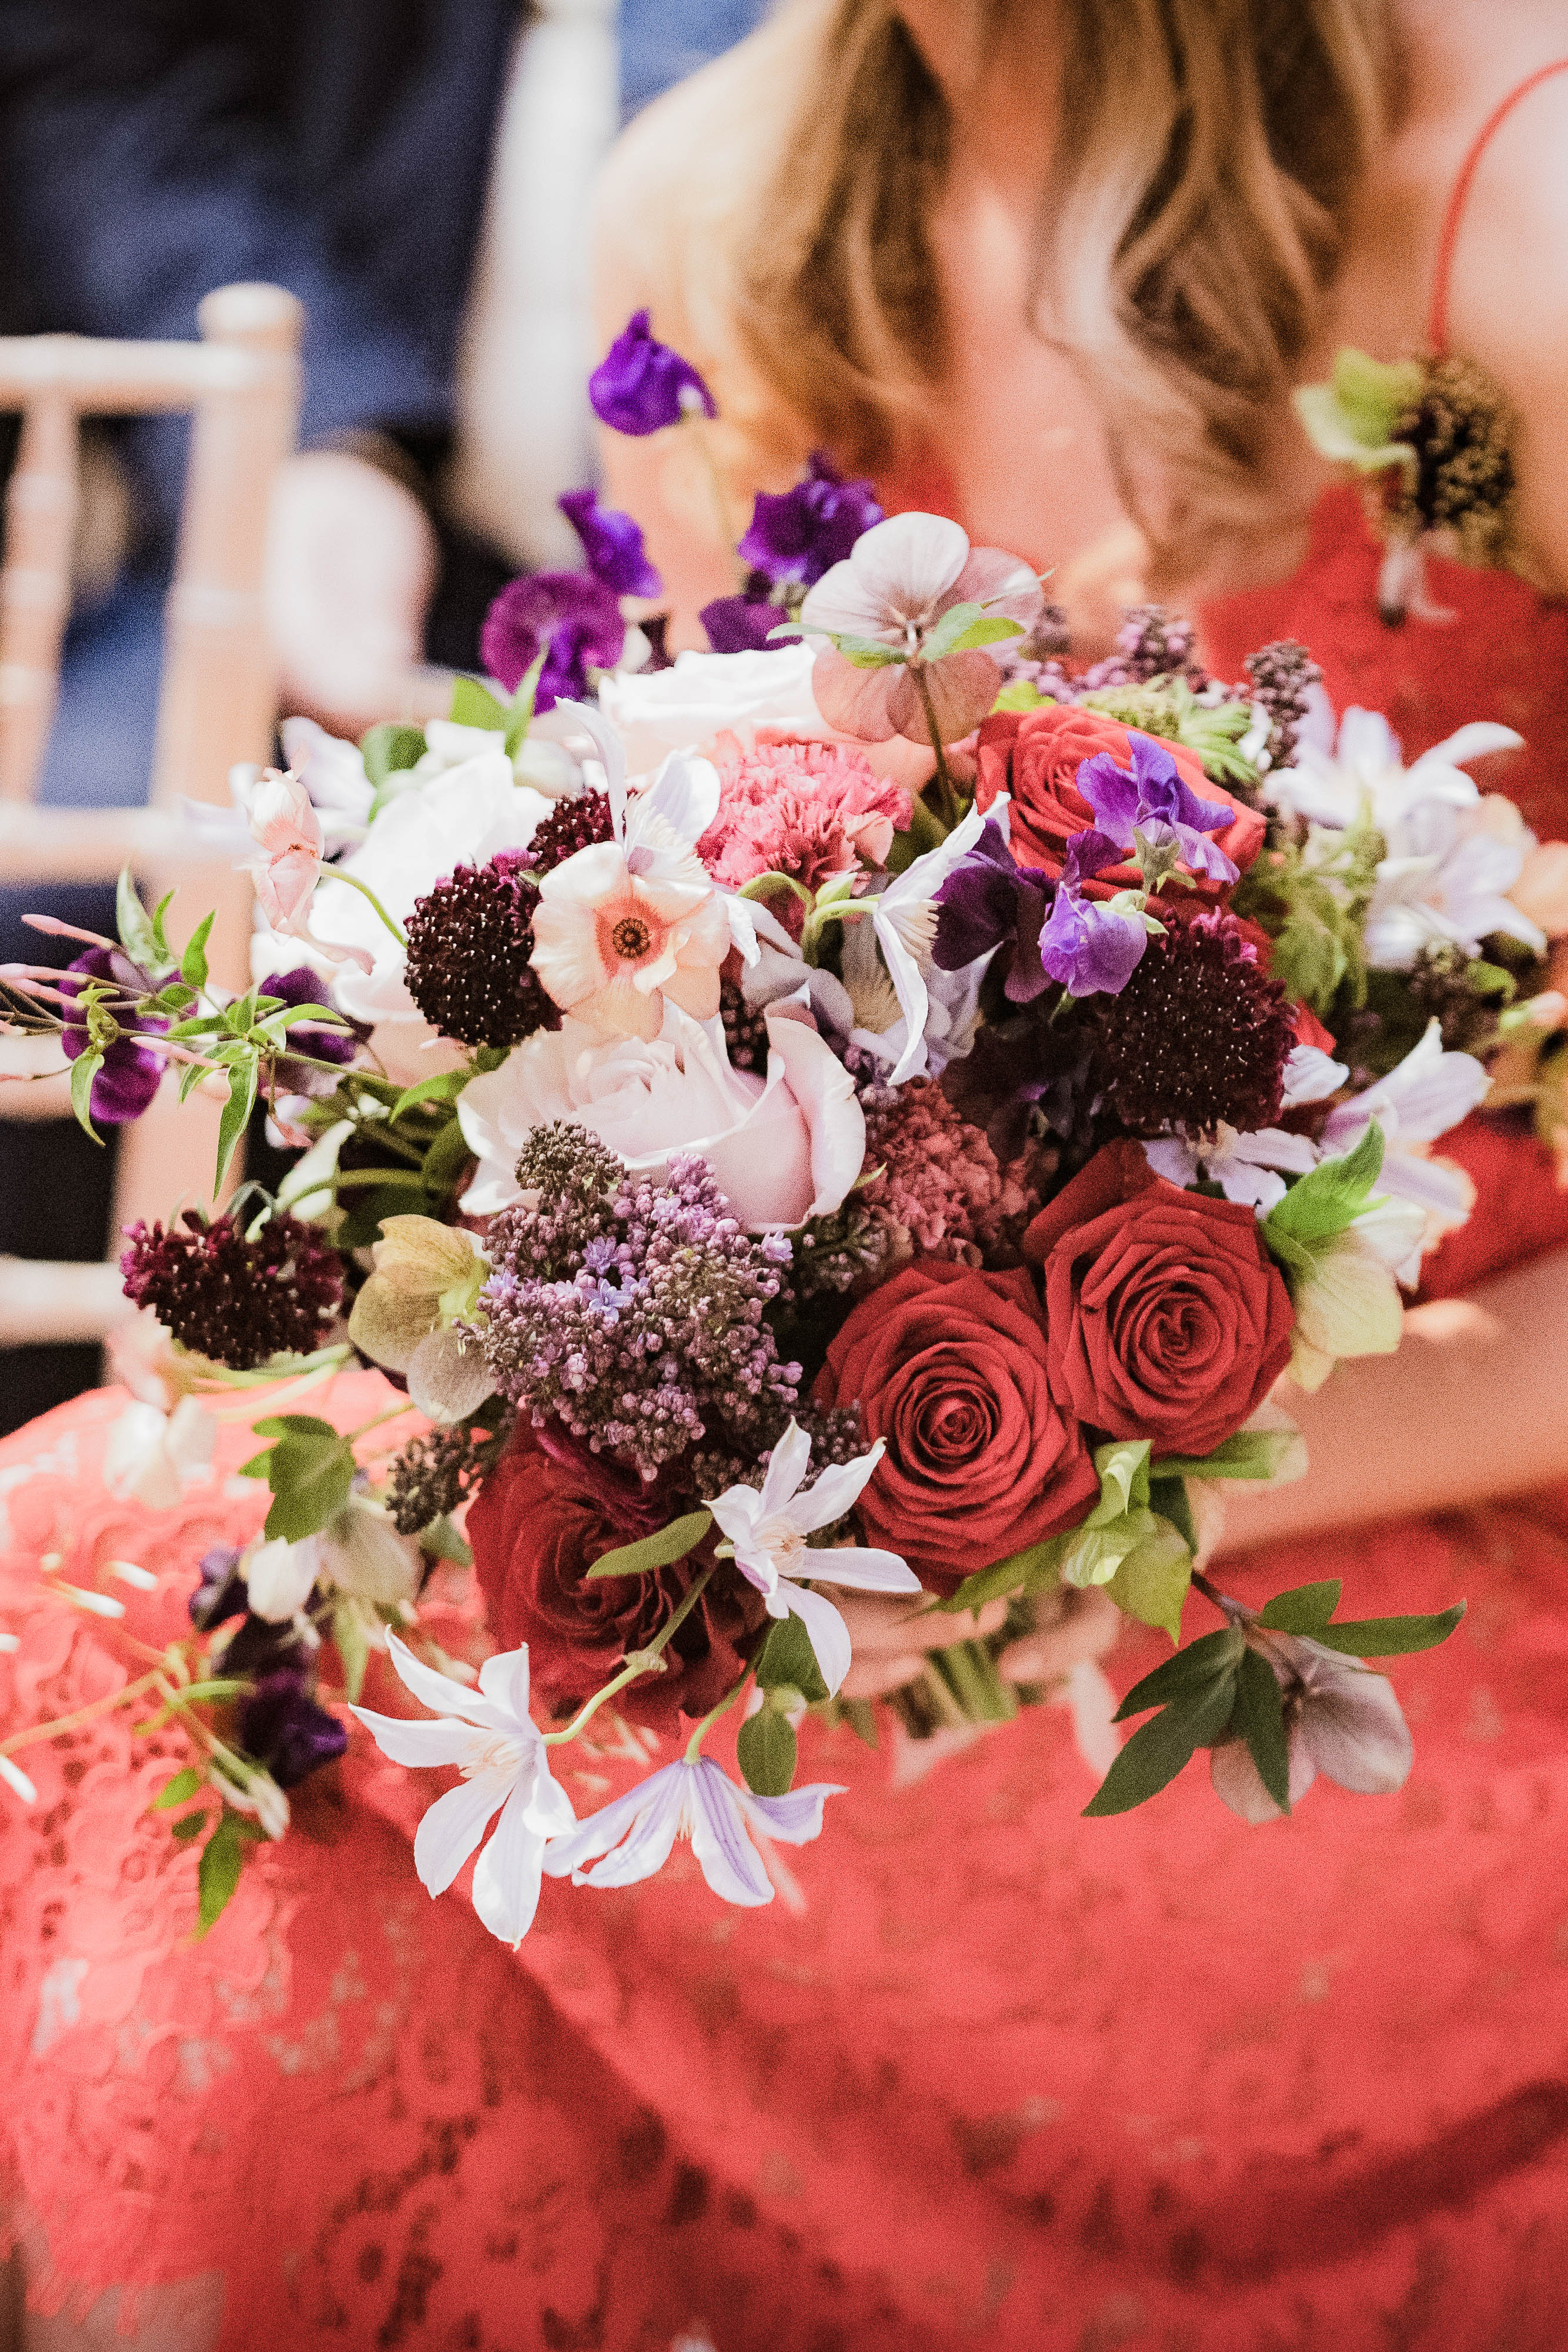 Bride in Red Dress Holding A Red Bouquet with Roses, Scabiosas, Lilac and Helleborus, Clematis, Butterfly Ranunculus